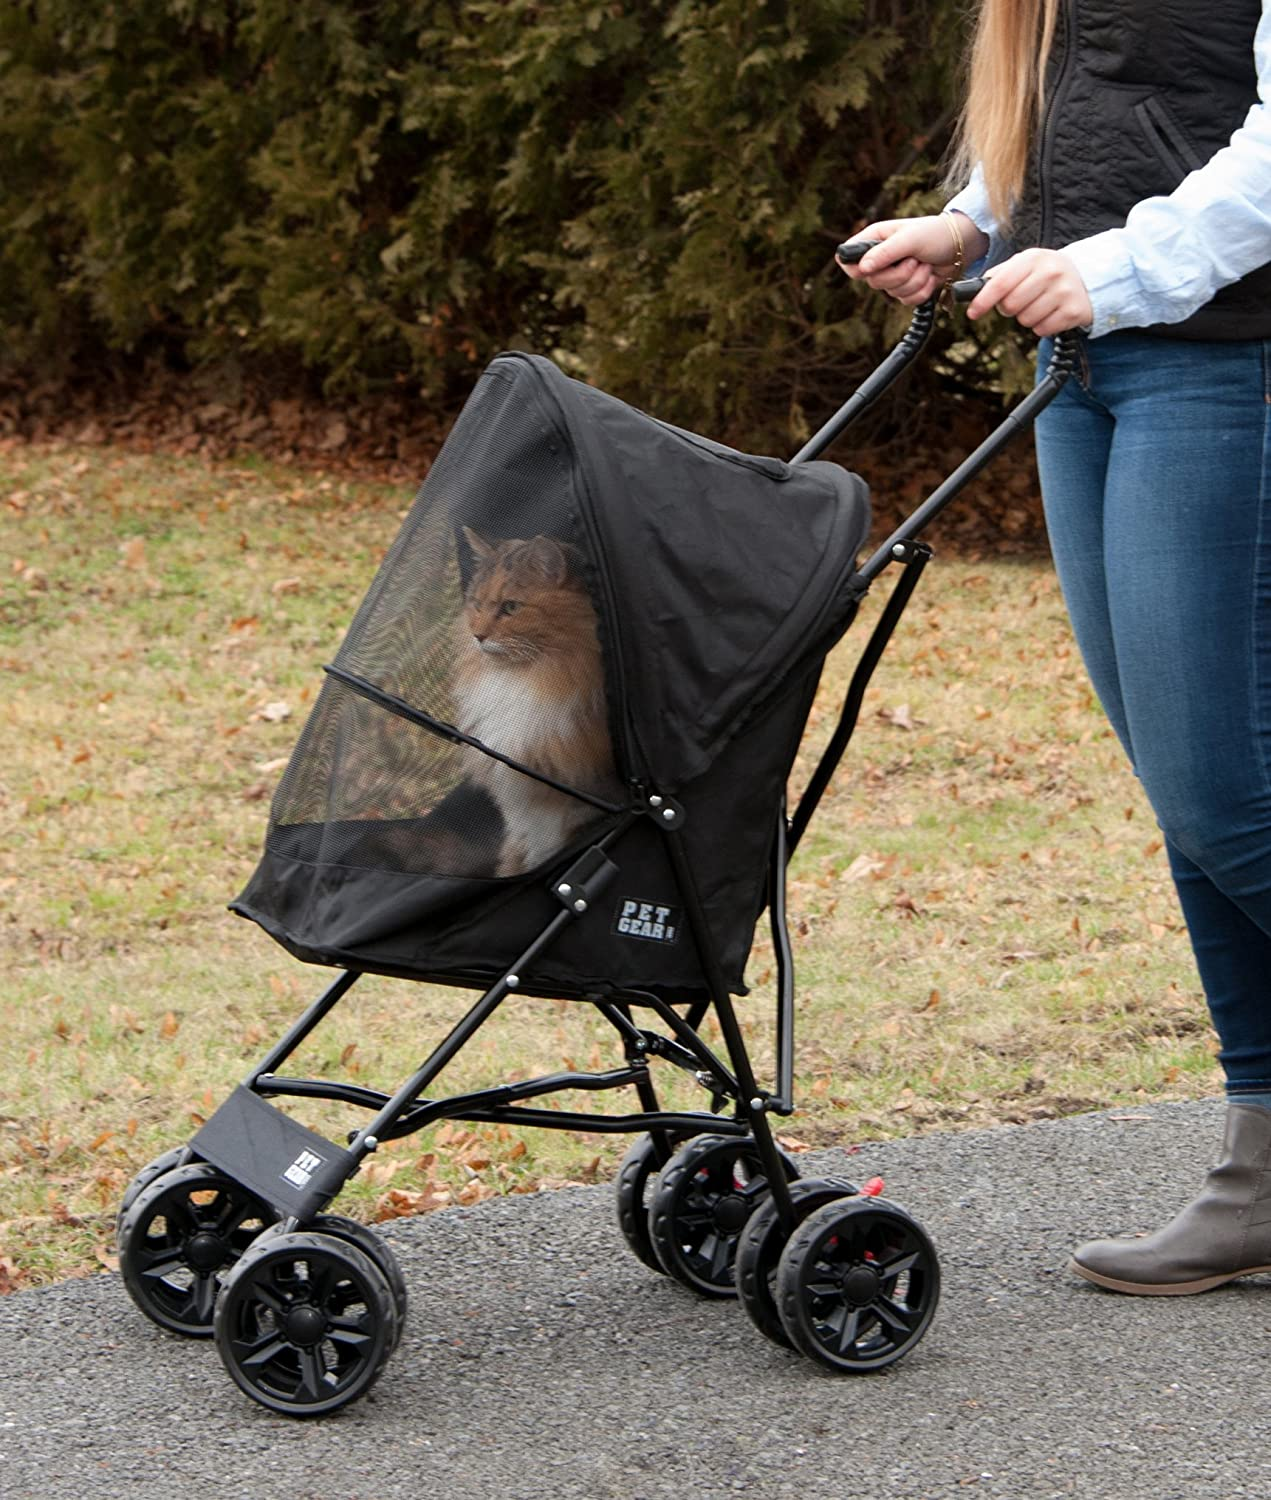 Pet Gear Ultra Lite Travel Stroller – Best Dog Stroller for Small Dogs